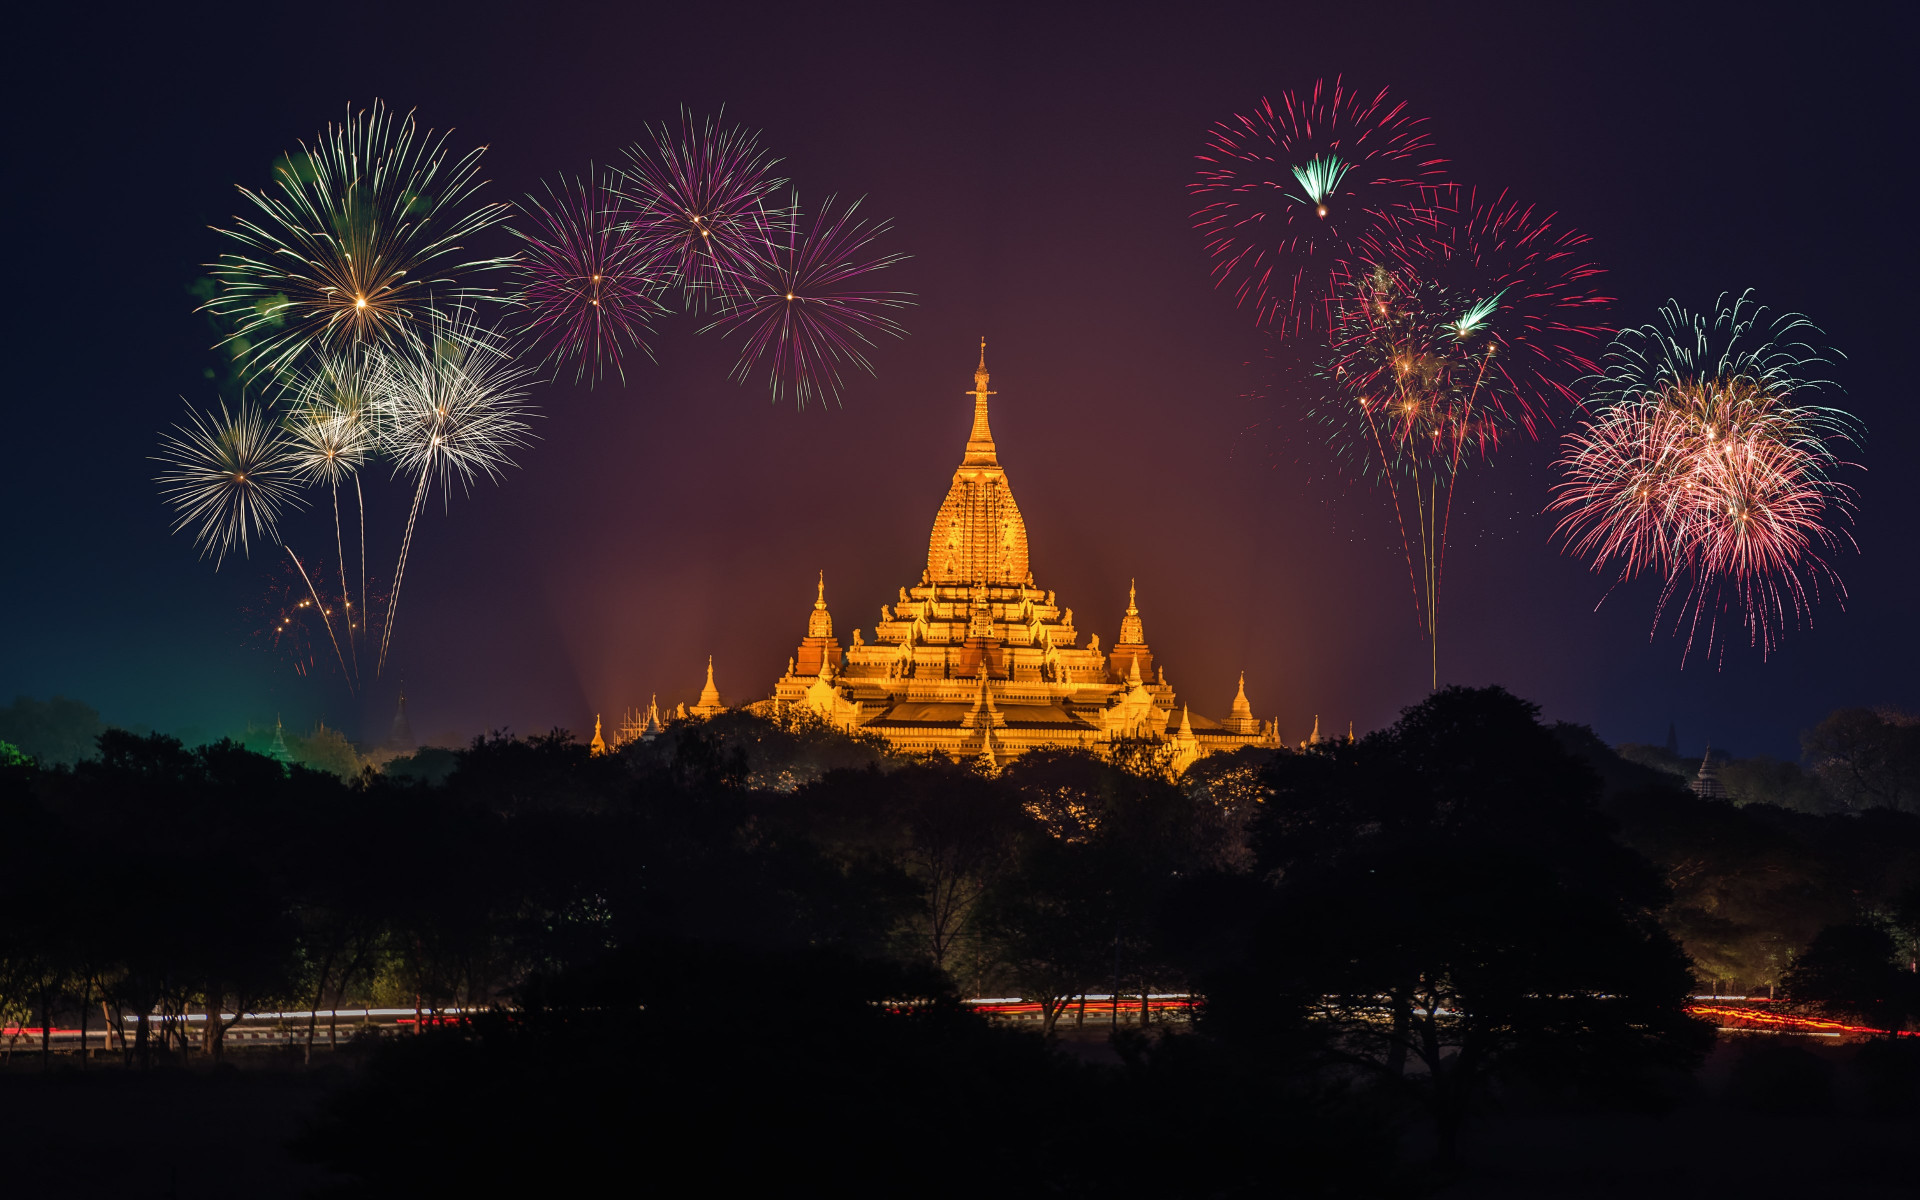 Fireworks above Ananda Phato temple | 1920x1200 wallpaper